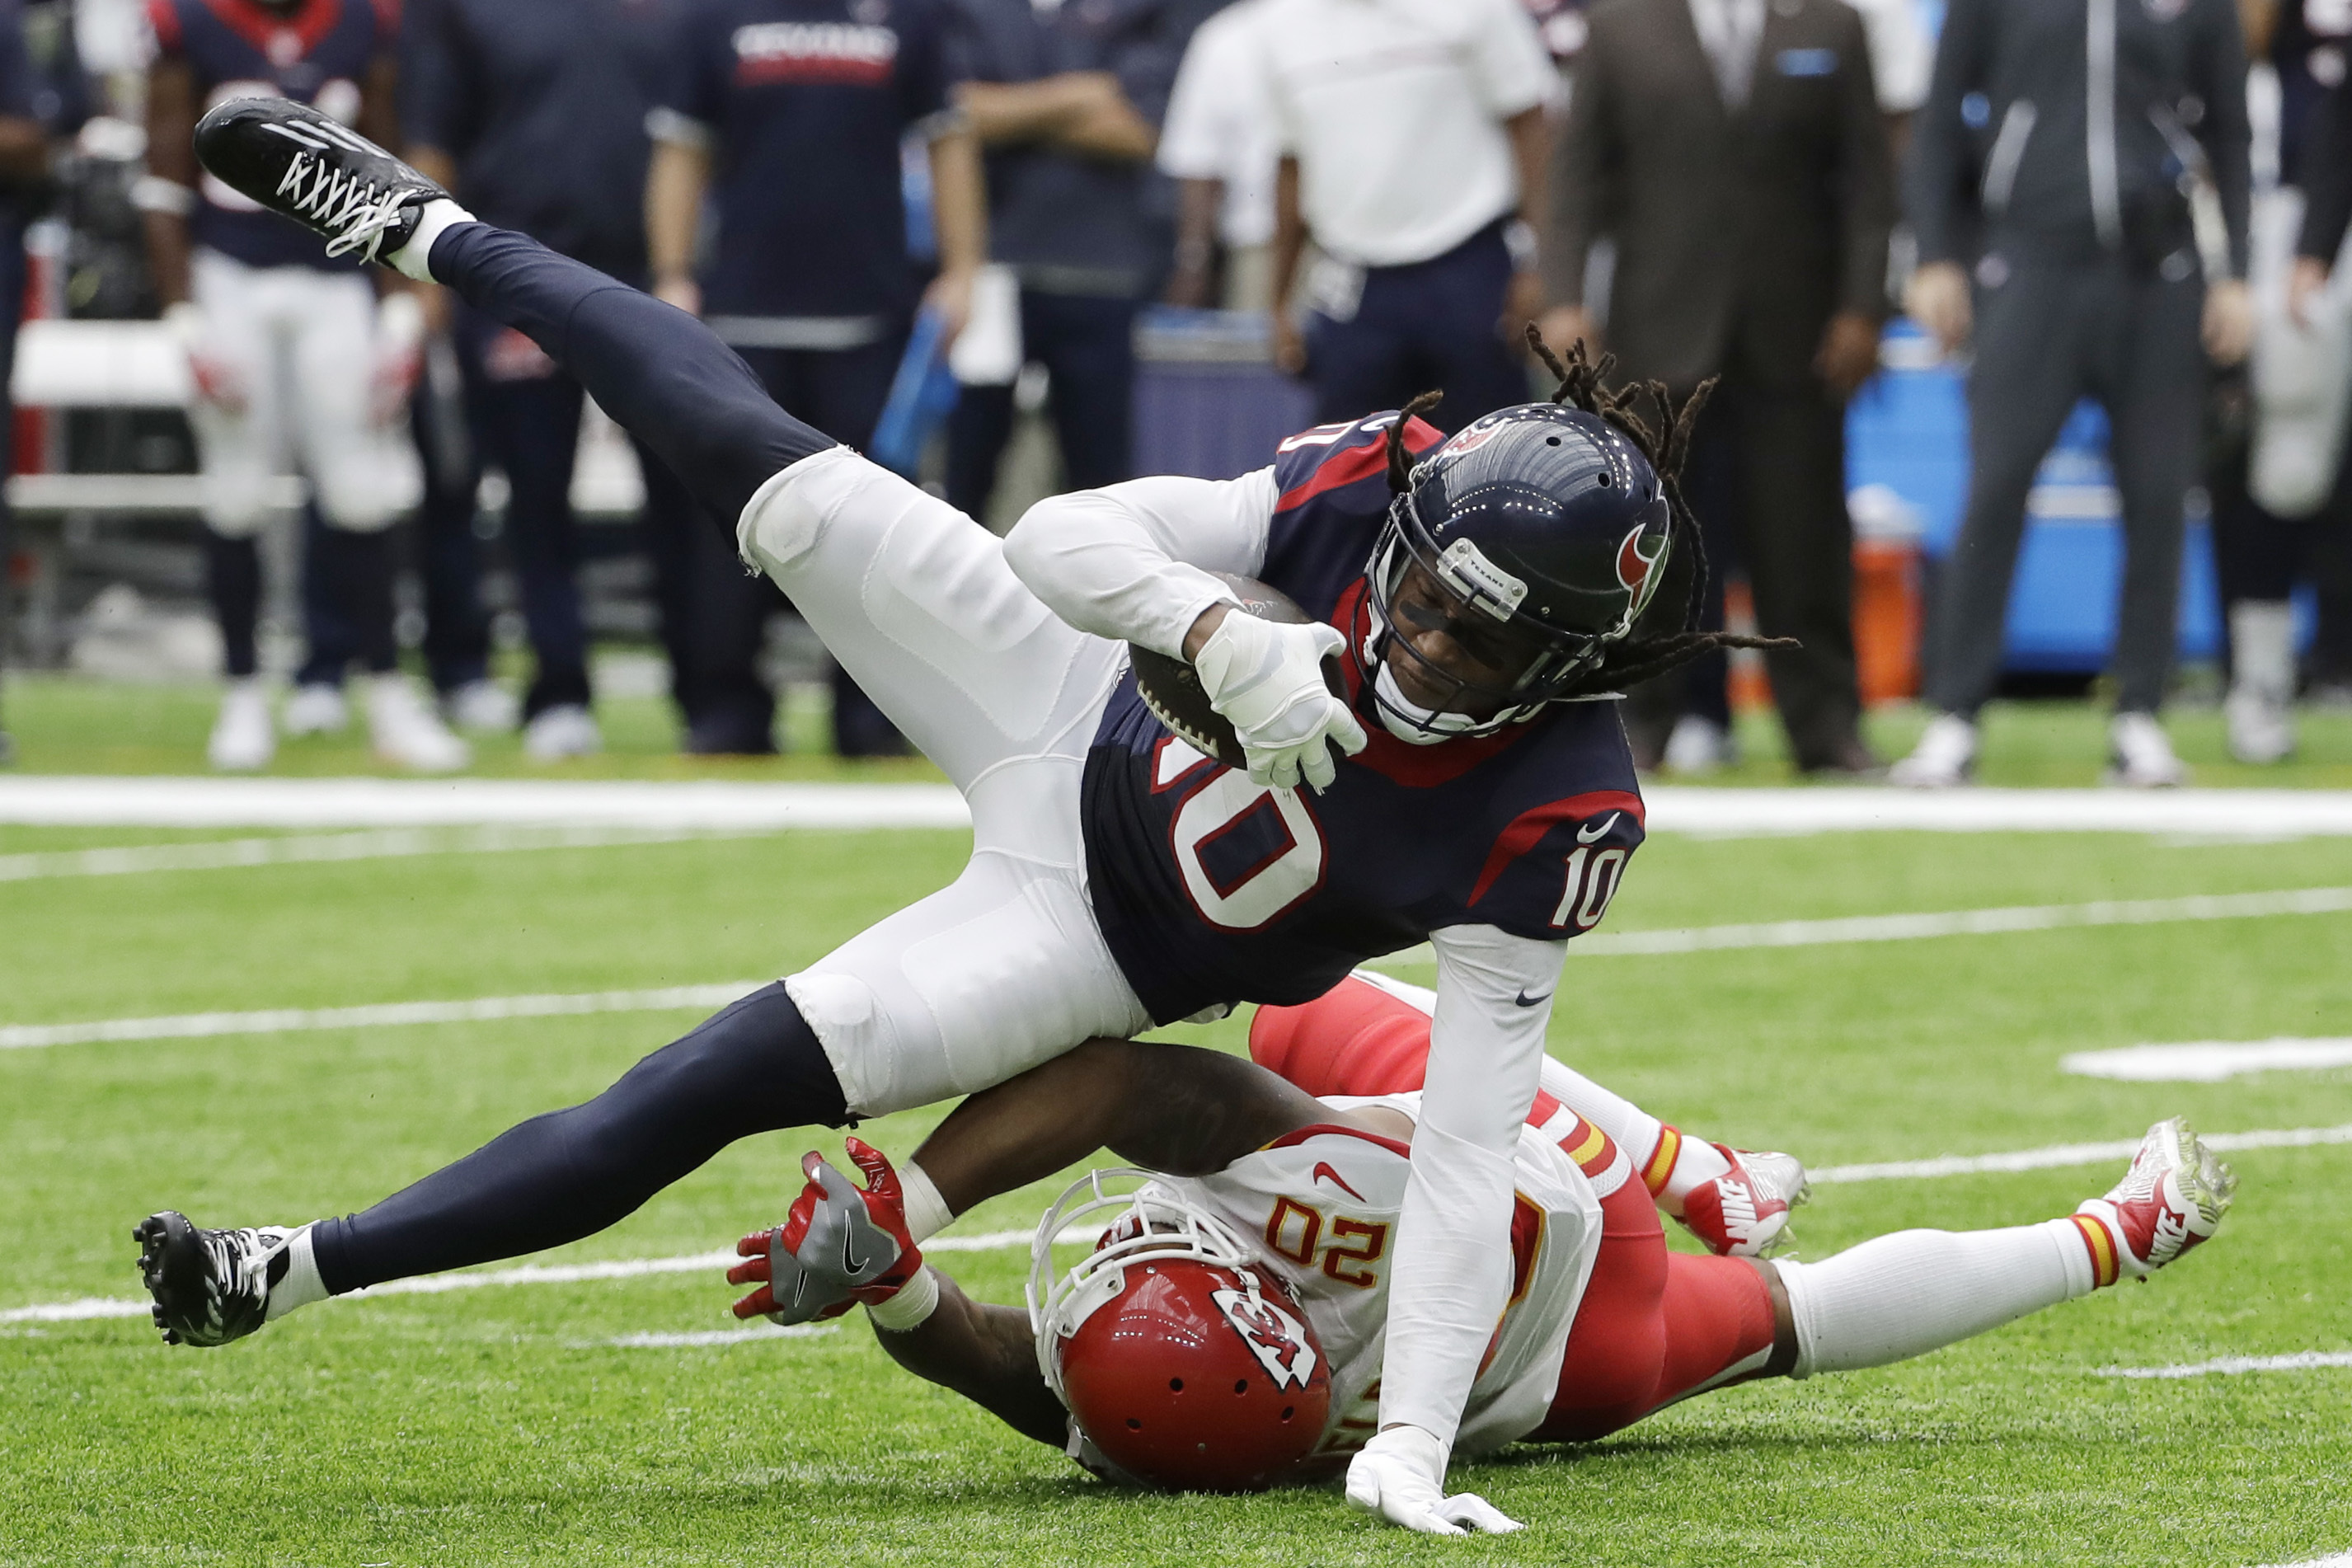 FILE - In this Sept. 18, 2016, file photo, Houston Texans wide receiver DeAndre Hopkins (10) is upended by Kansas City Chiefs cornerback Steven Nelson (20) during the second half of an NFL football game in Houston. The Texans have been dreadful on the roa